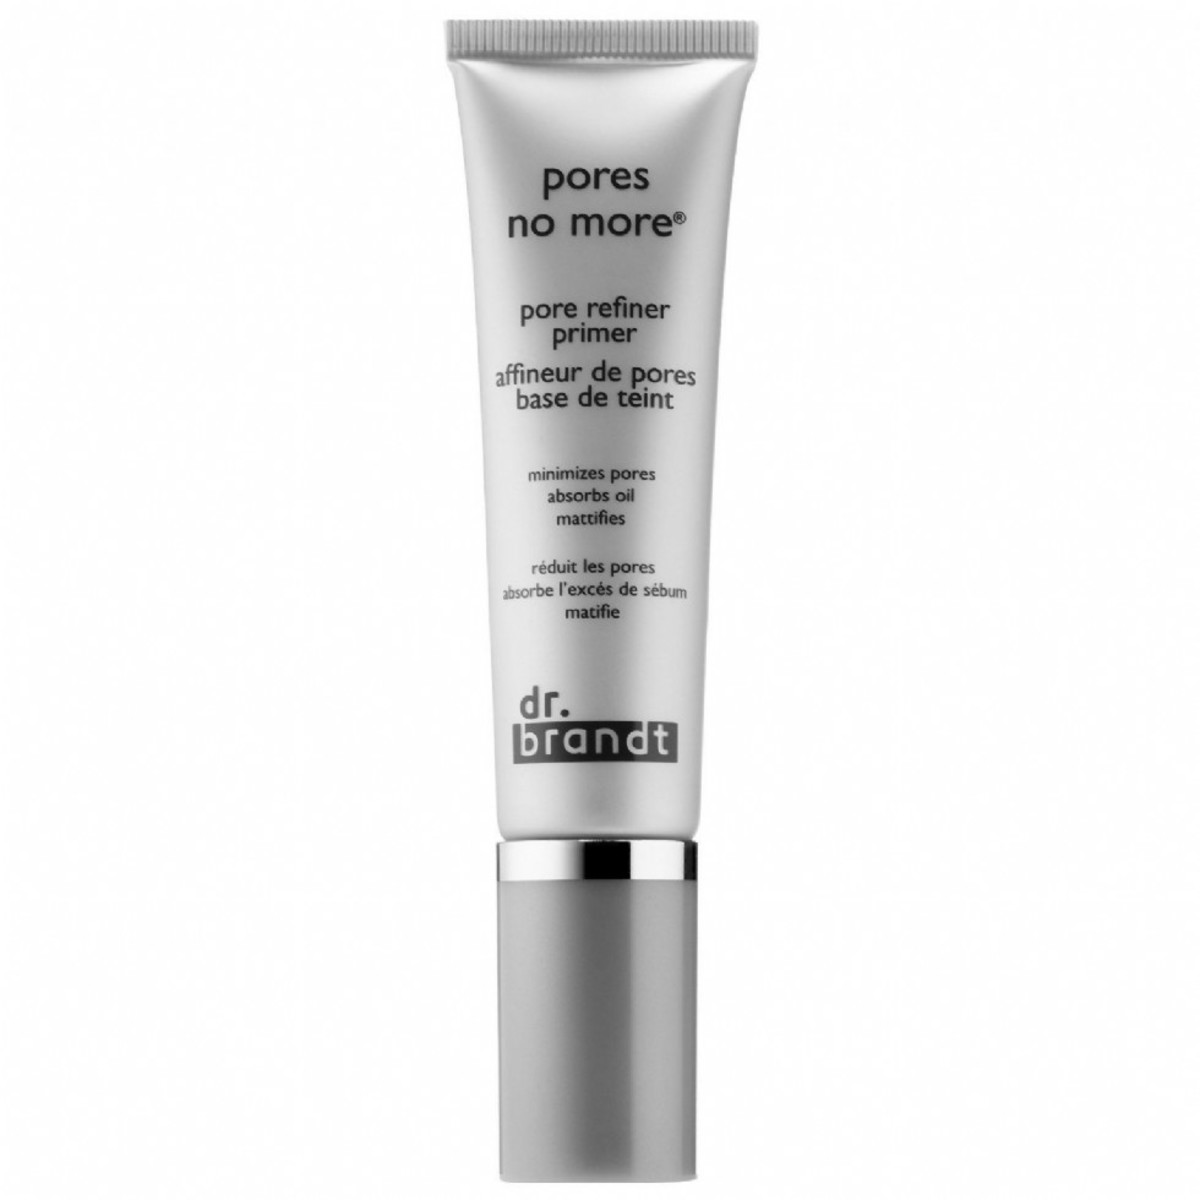 The refiner gives your face a matte finish to reduce the look of large pores.